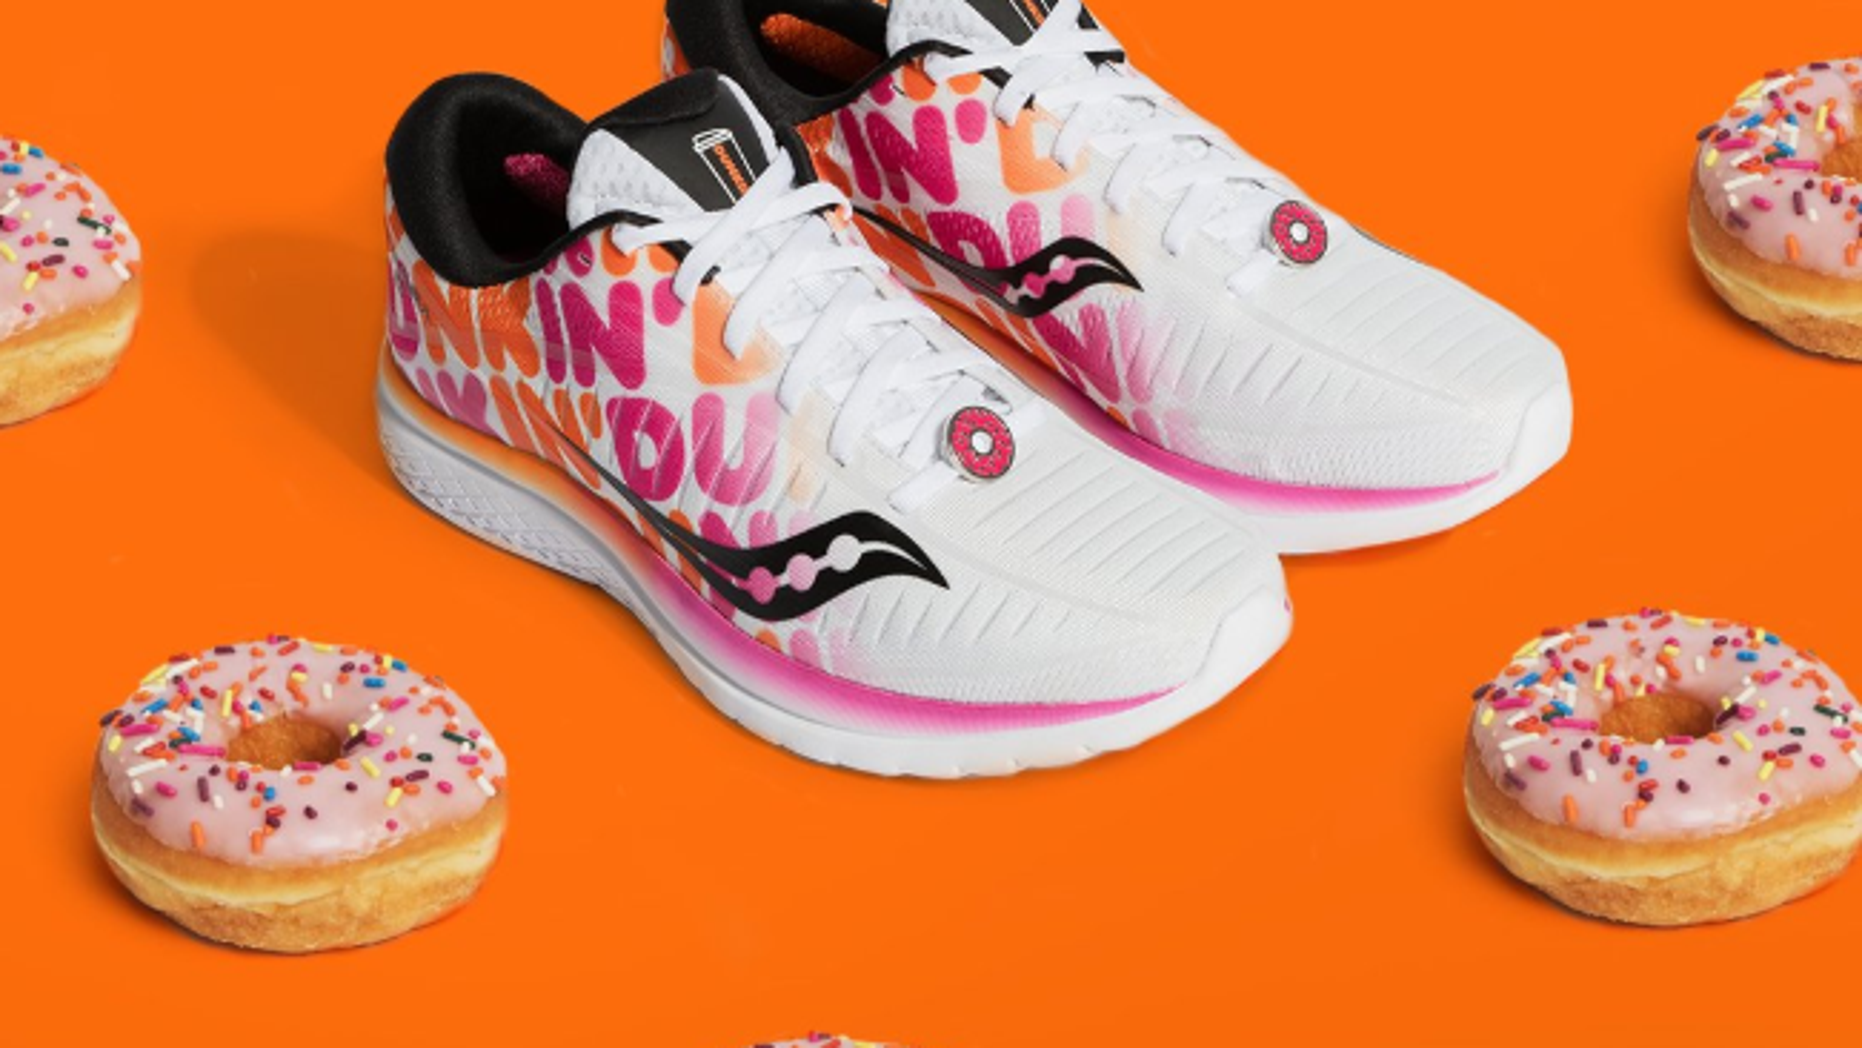 Dunkin' and Saucony partnered to release doughnut inspired sneakers before the Boston Marathon.